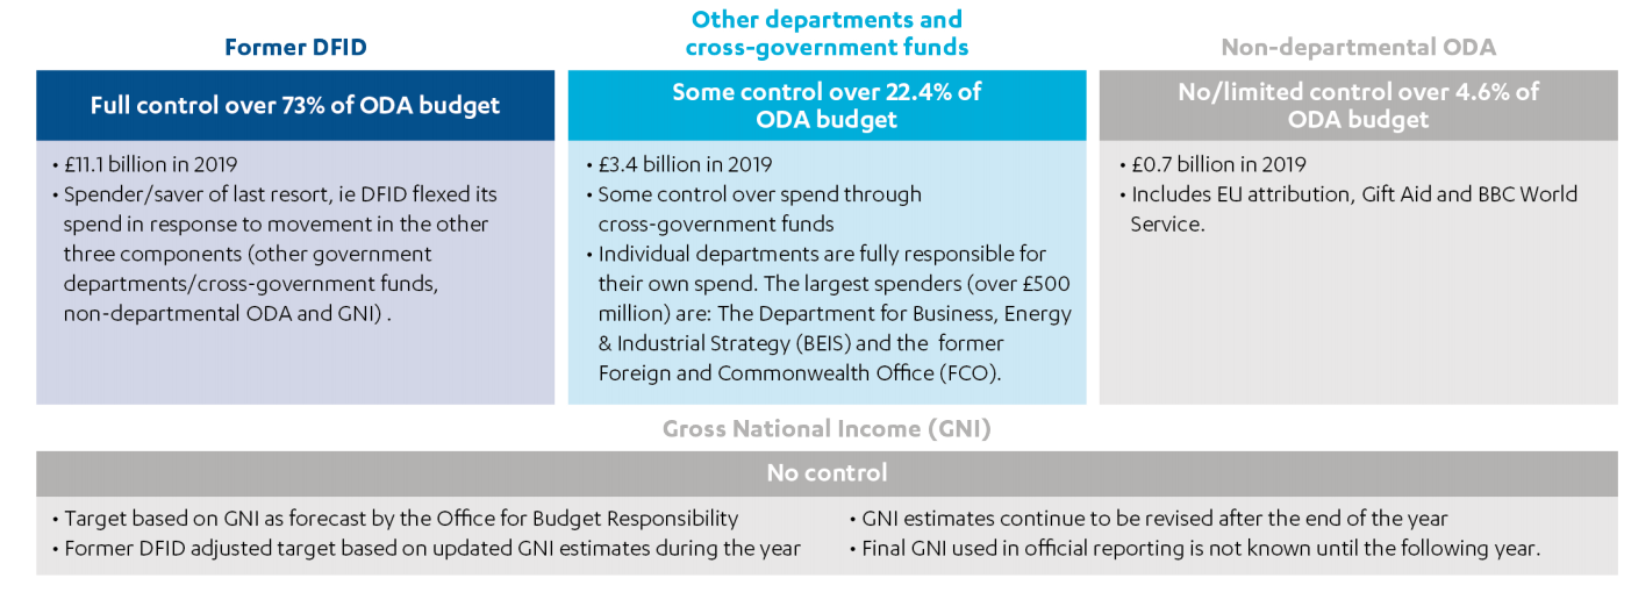 Overview of DFID's level of control over the main components of ODA spend